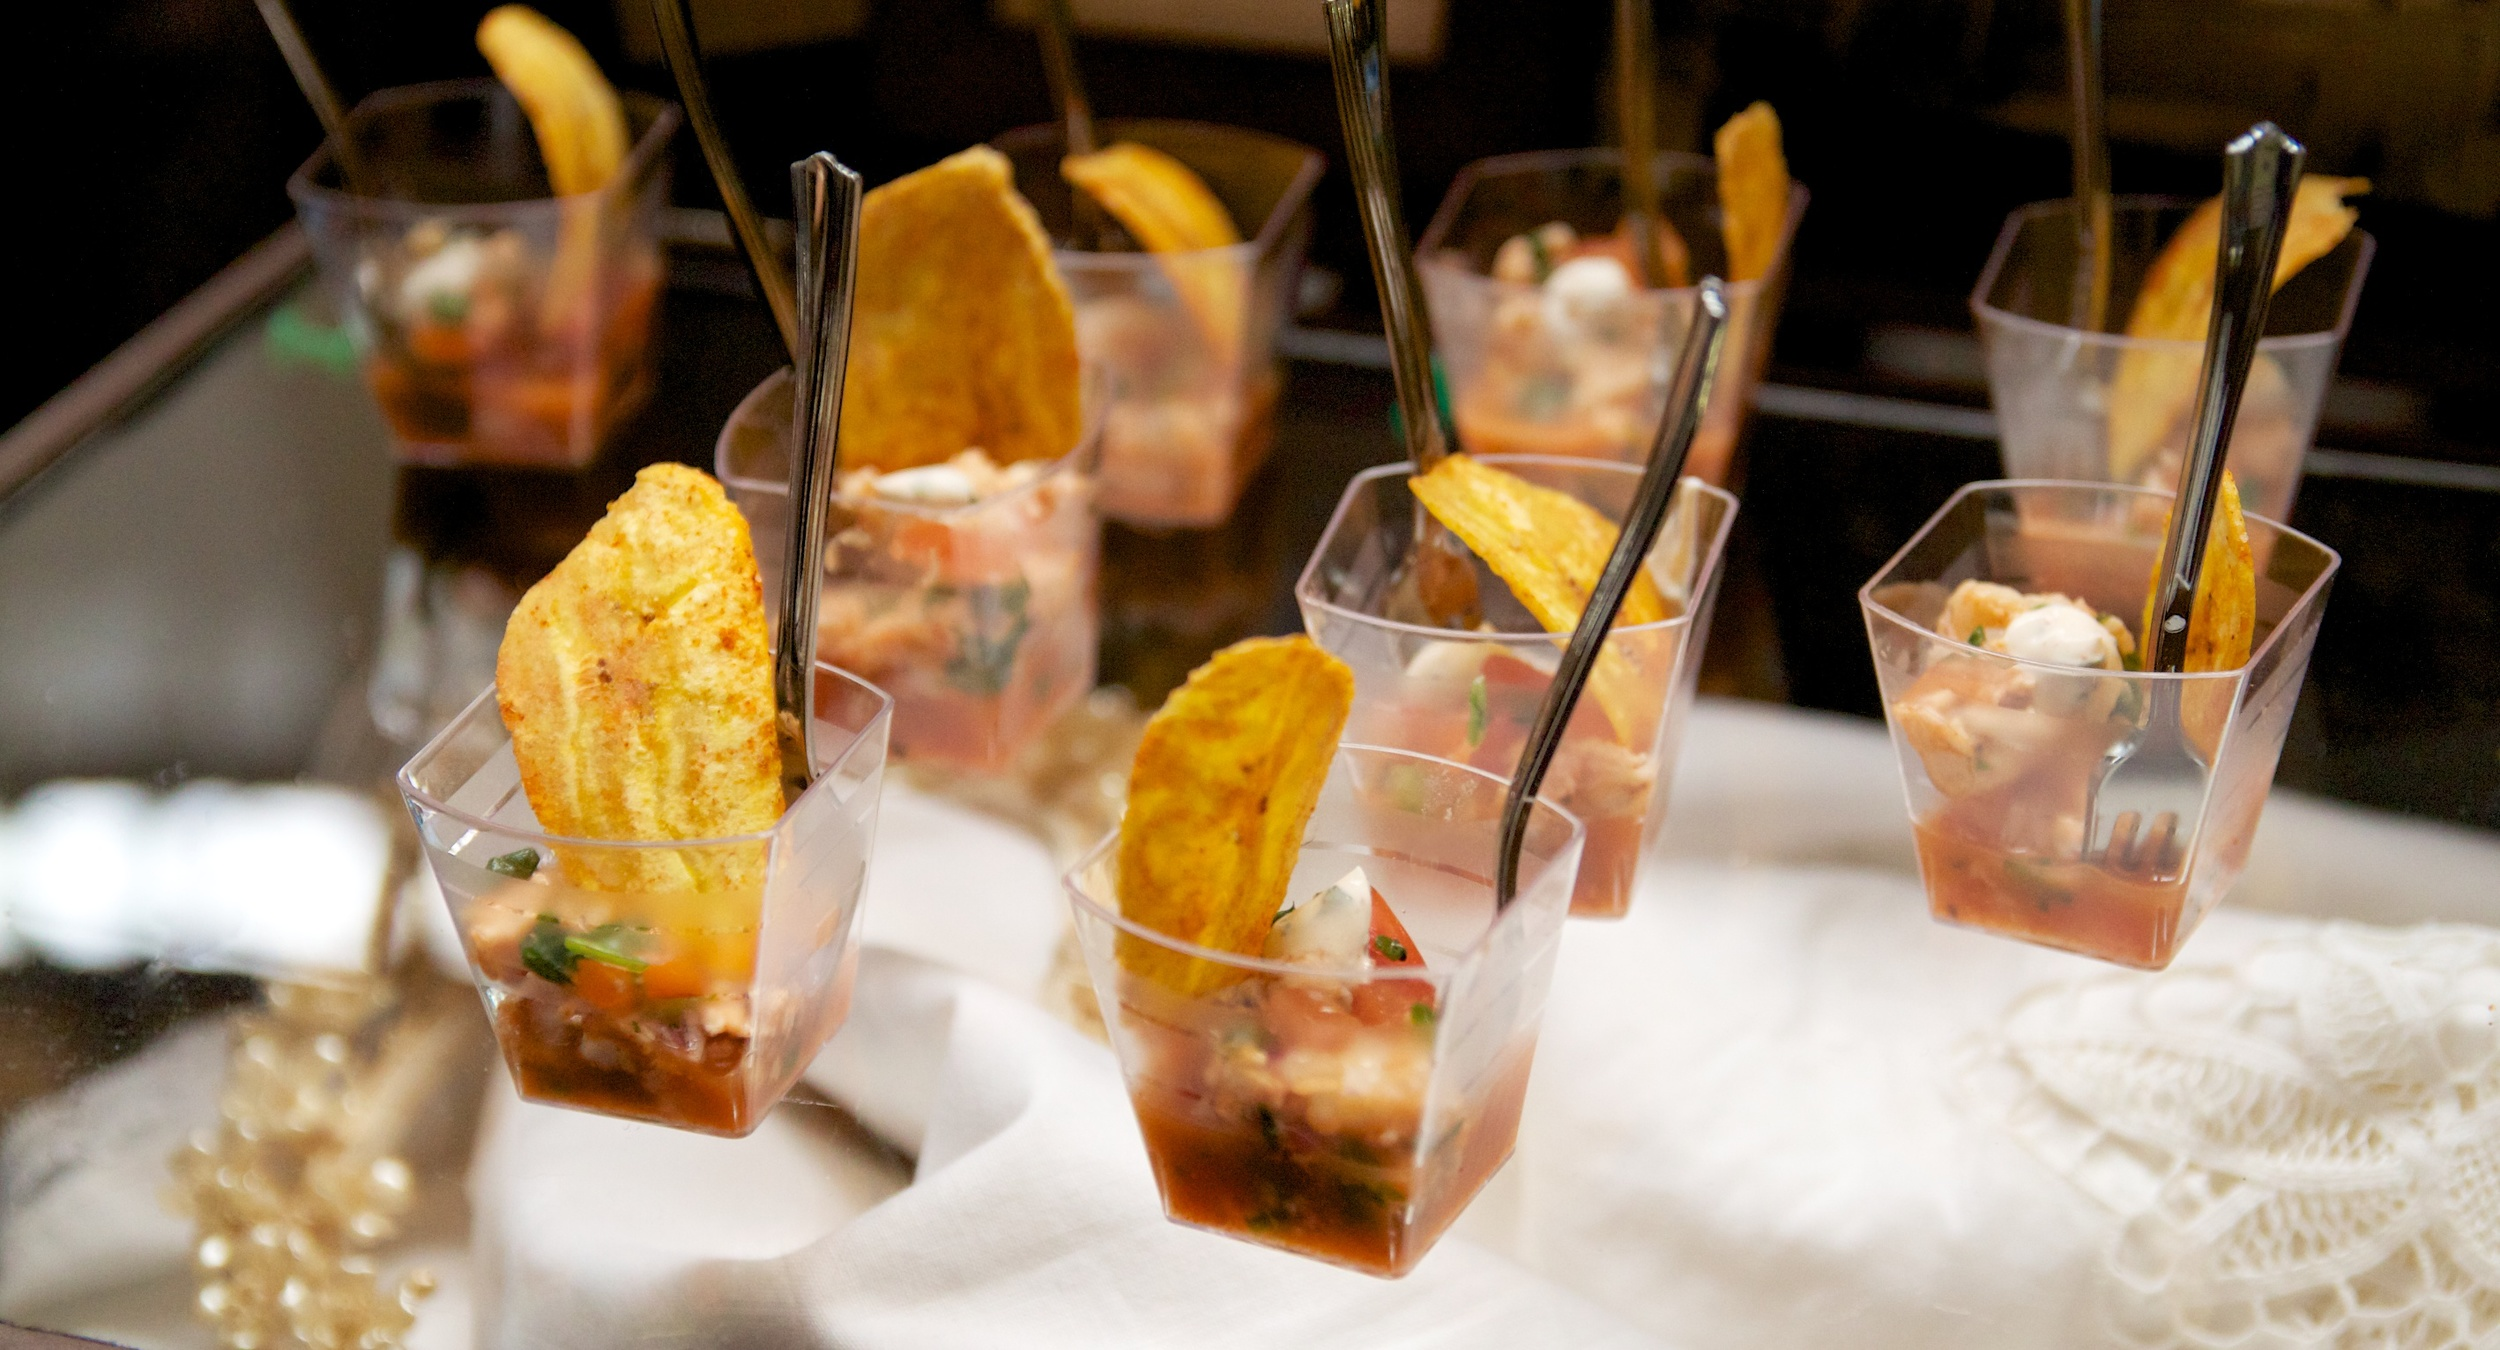 shrimp_ceviche_plantain_chip_1 057.jpg